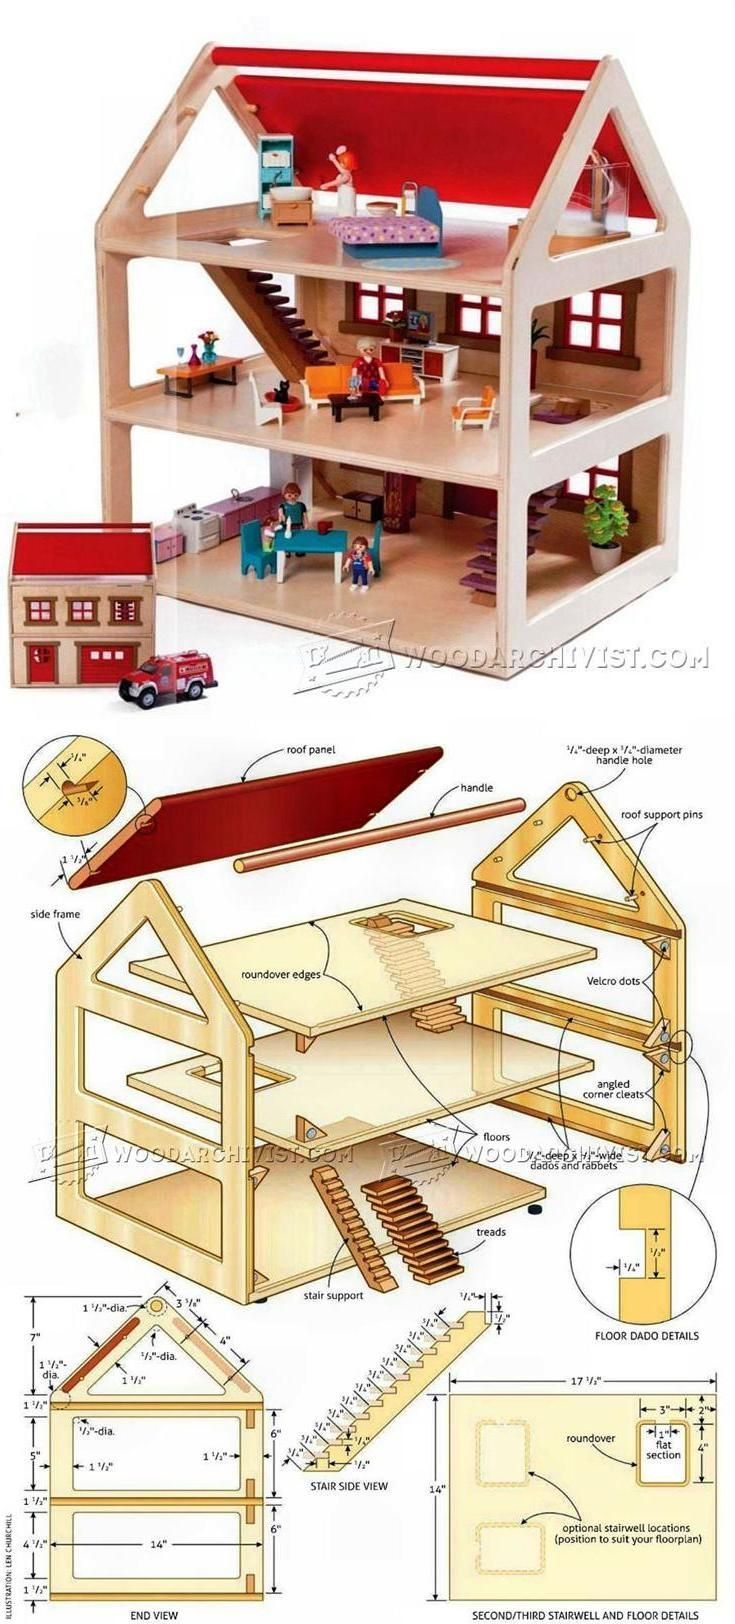 toy house plans - children's wooden toy plans and projects